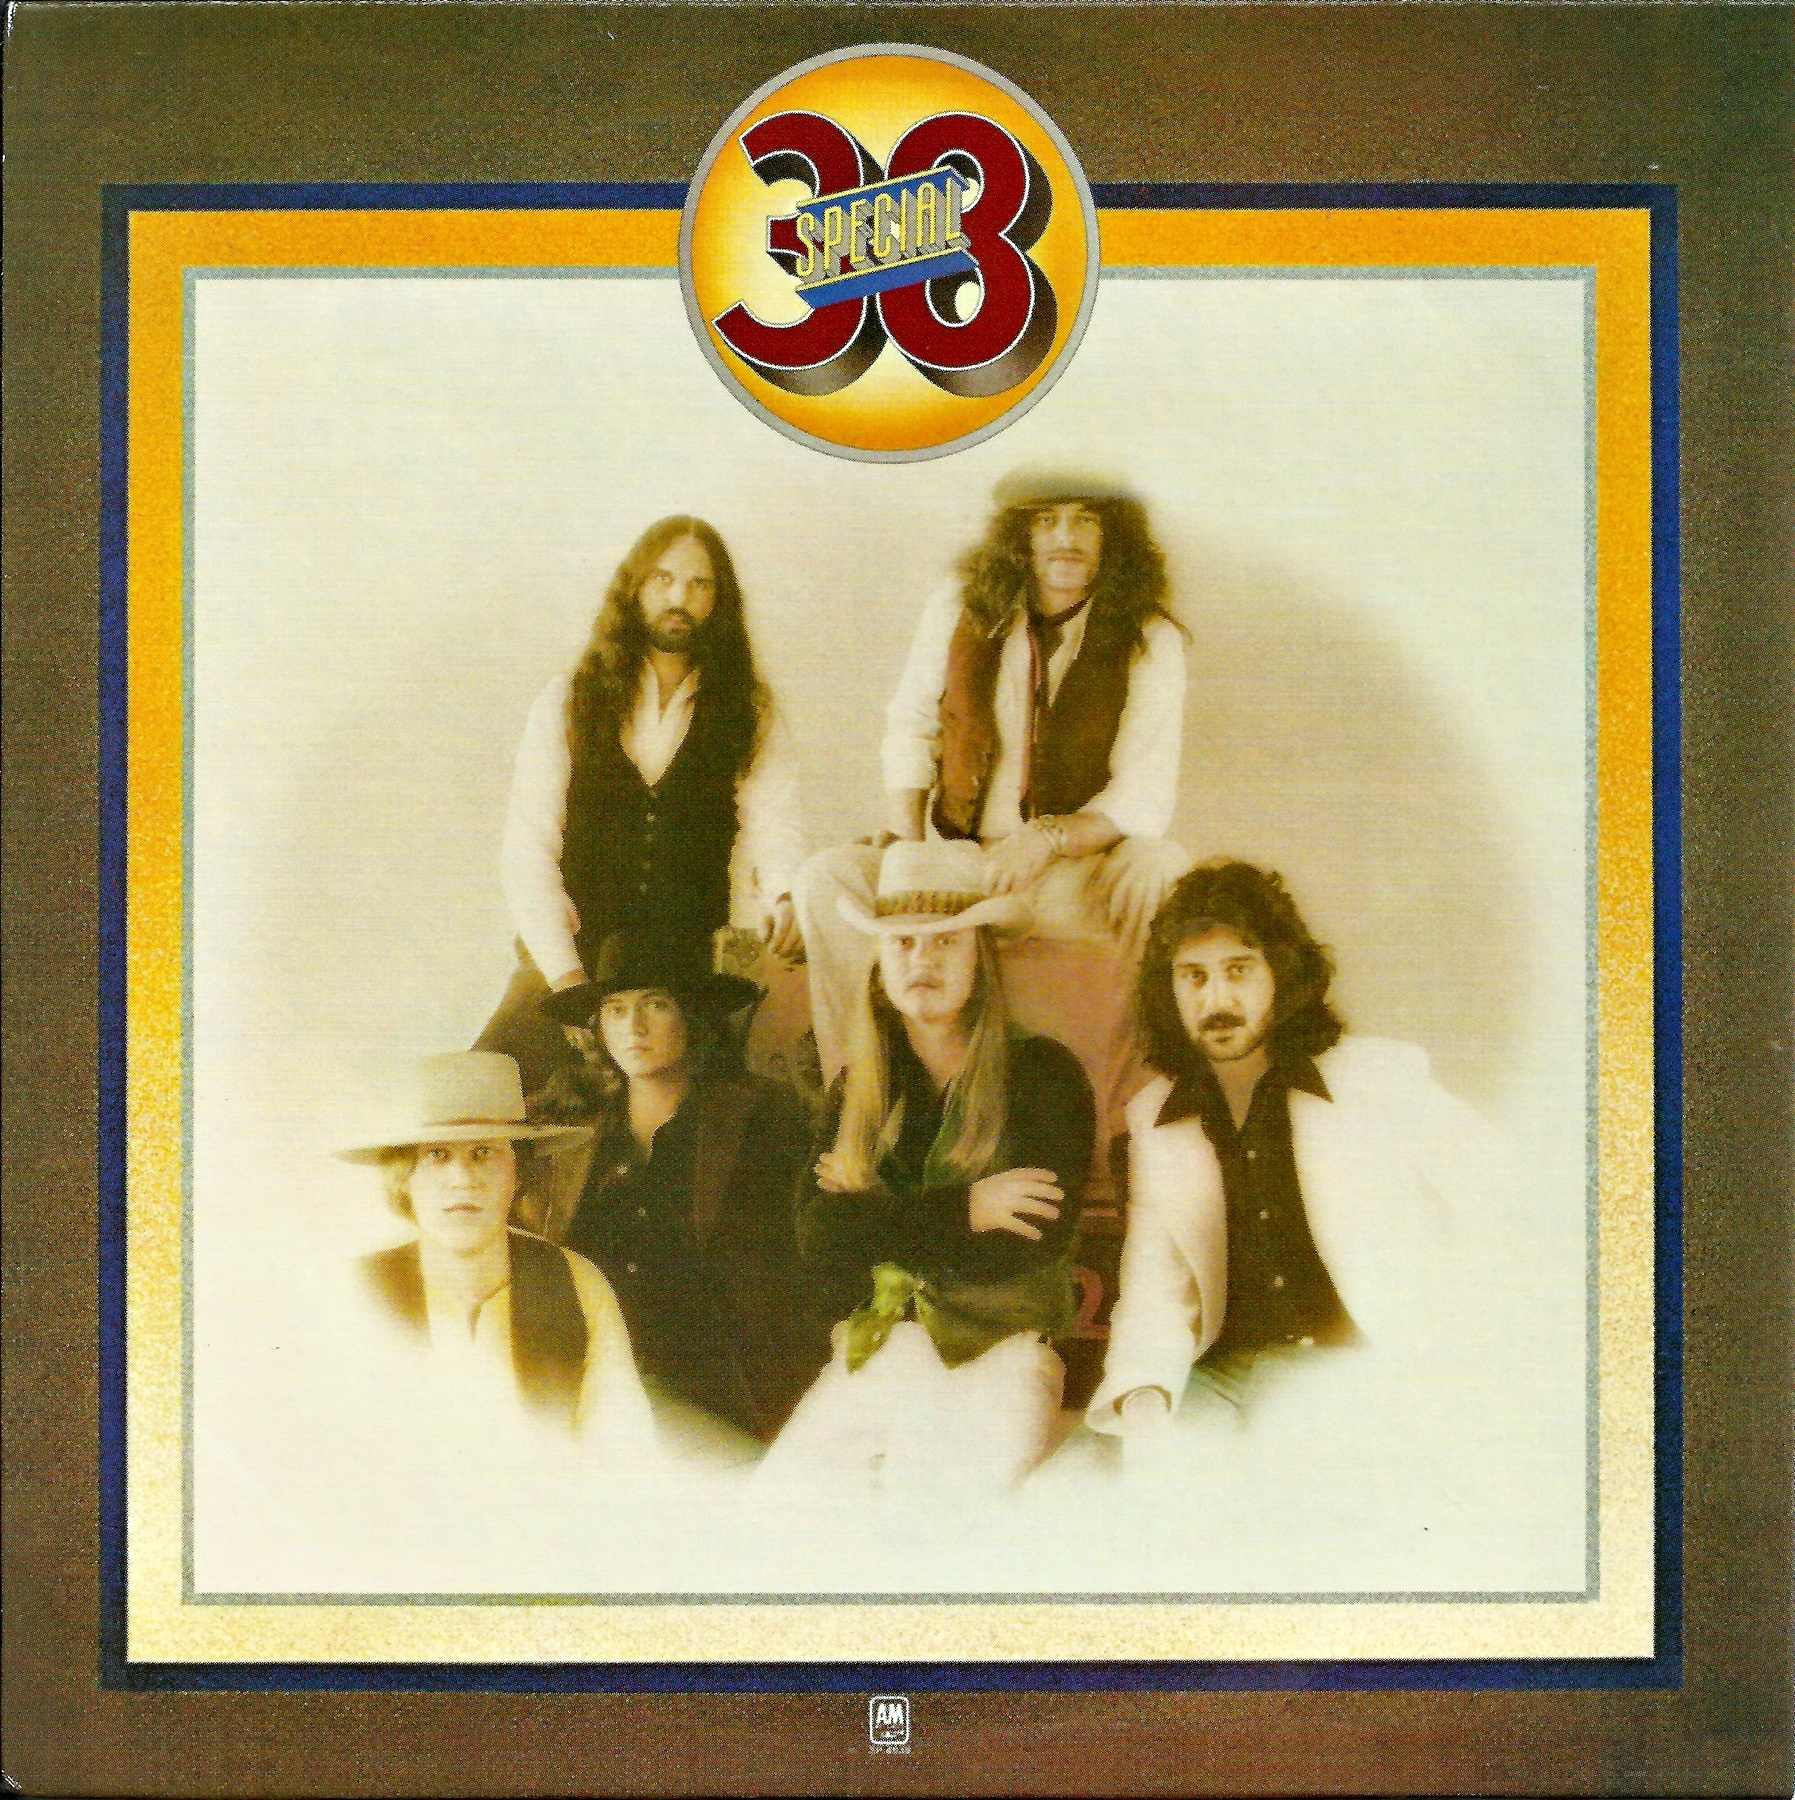 38 Special - Fly Away